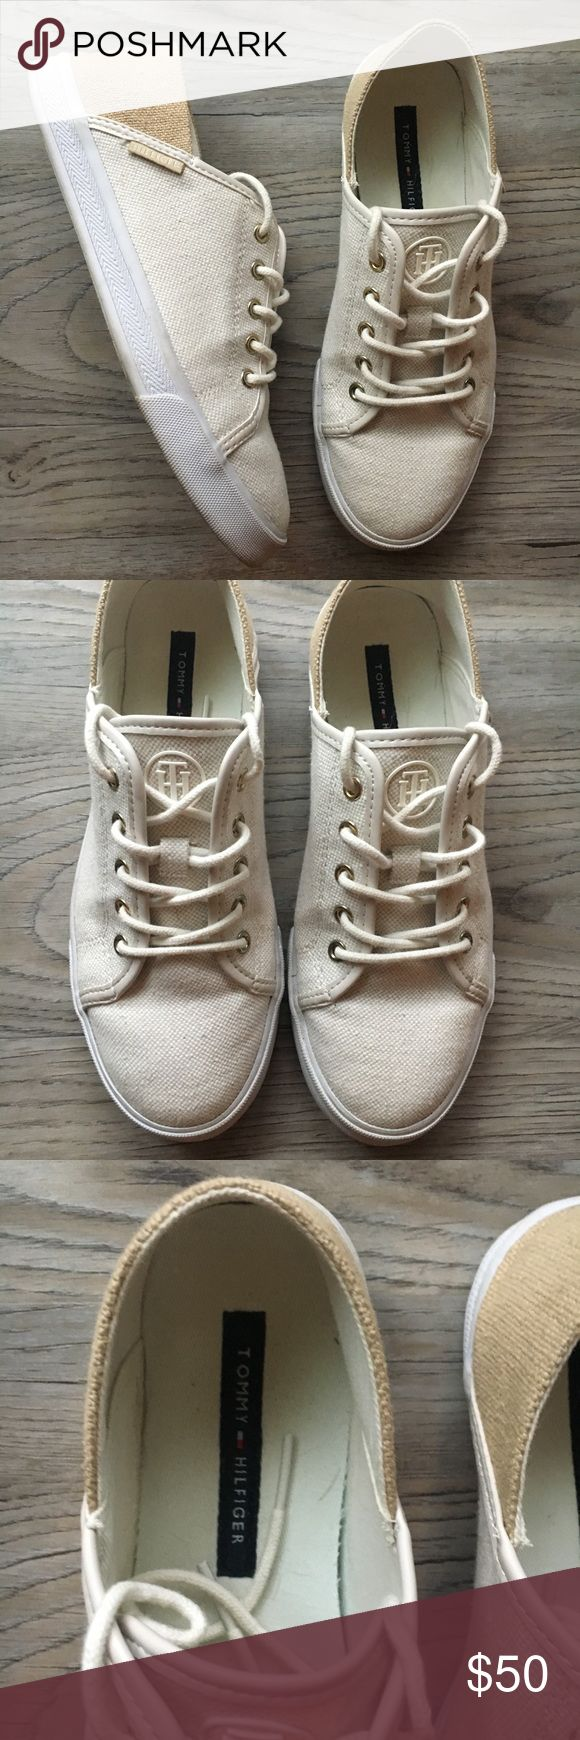 Tommy Hilfiger Khaki and Beige Casual Sneakers Tommy Hilfiger Khaki and Beige Casual Sneakers. Size 7. Like new condition - only worn a couple of times! Please feel free to make offers or ask questions. Tommy Hilfiger Shoes Sneakers